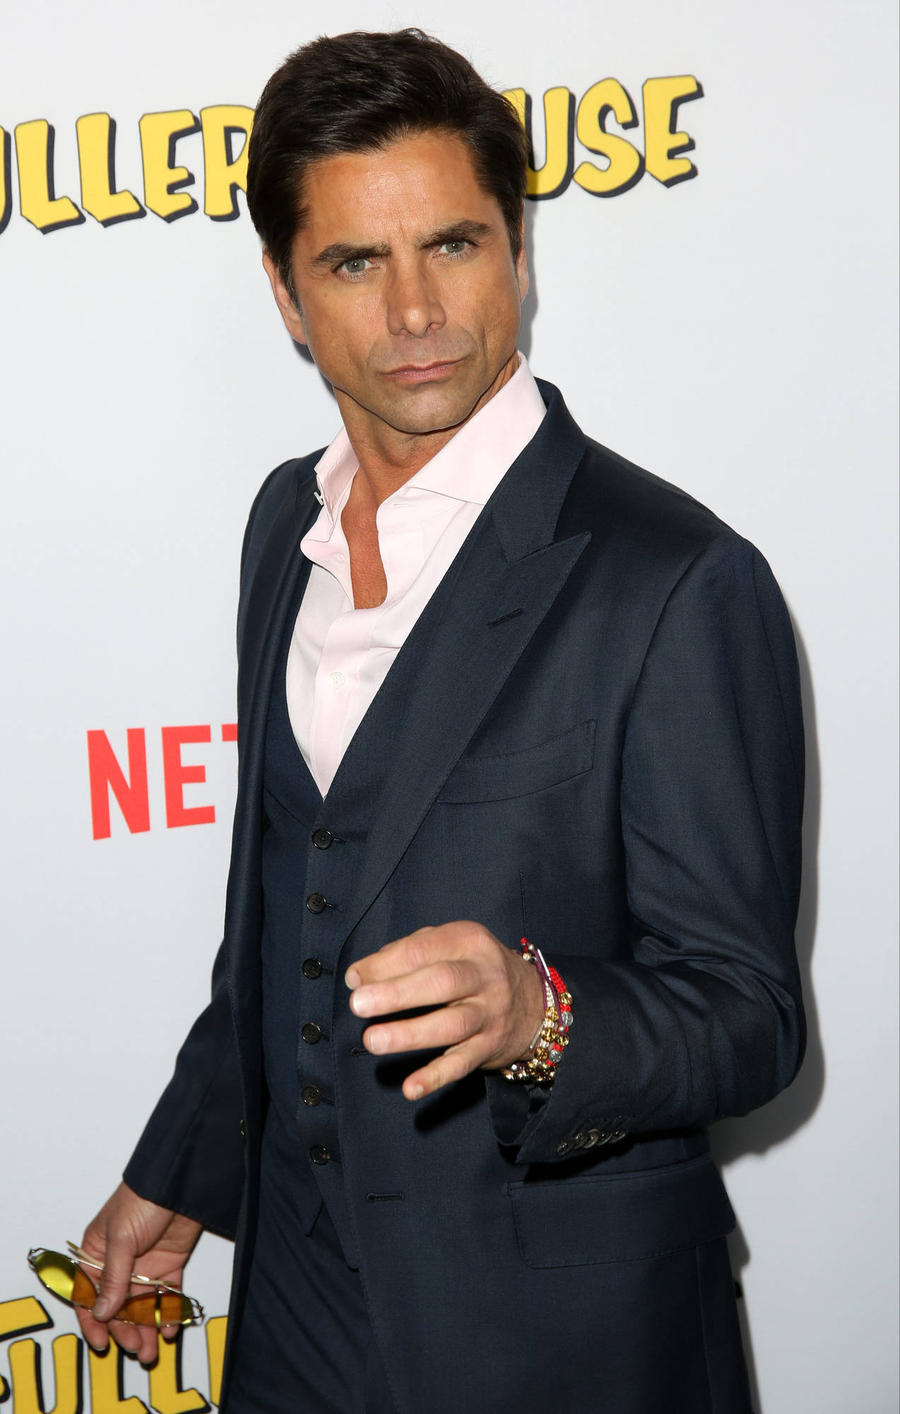 John Stamos' Mystery Girlfriend Revealed